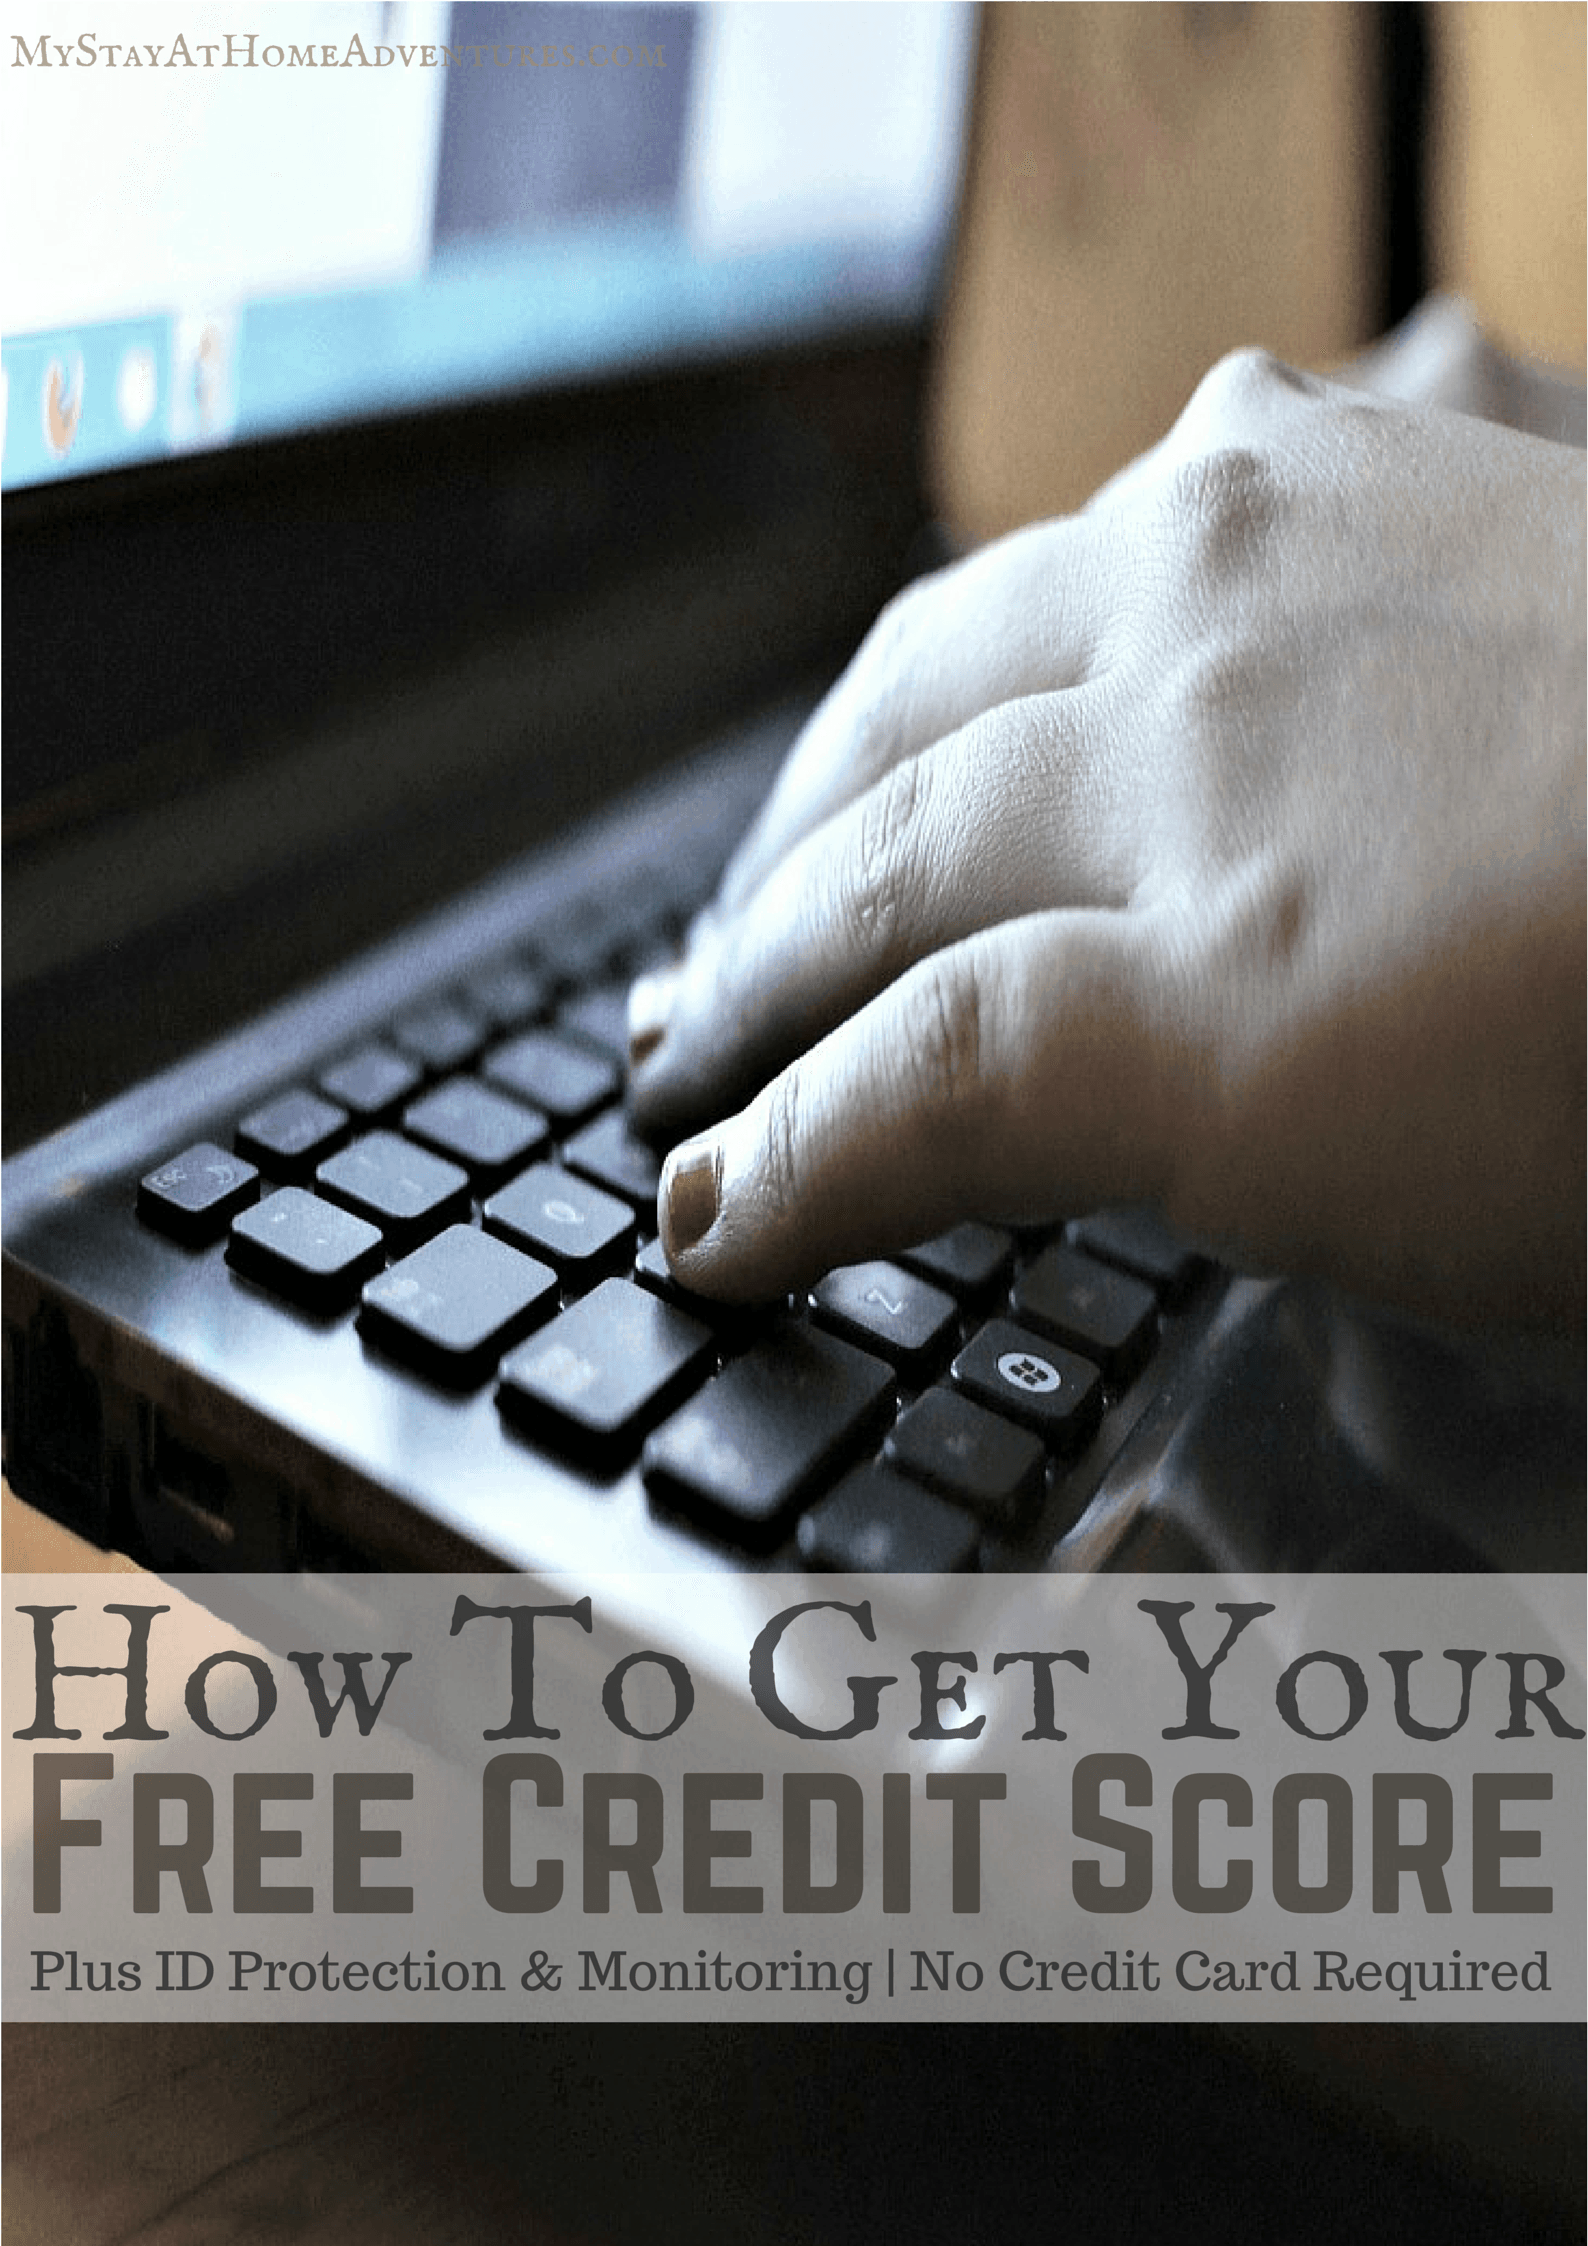 Learn where you can get your free credit score and much more for FREE.